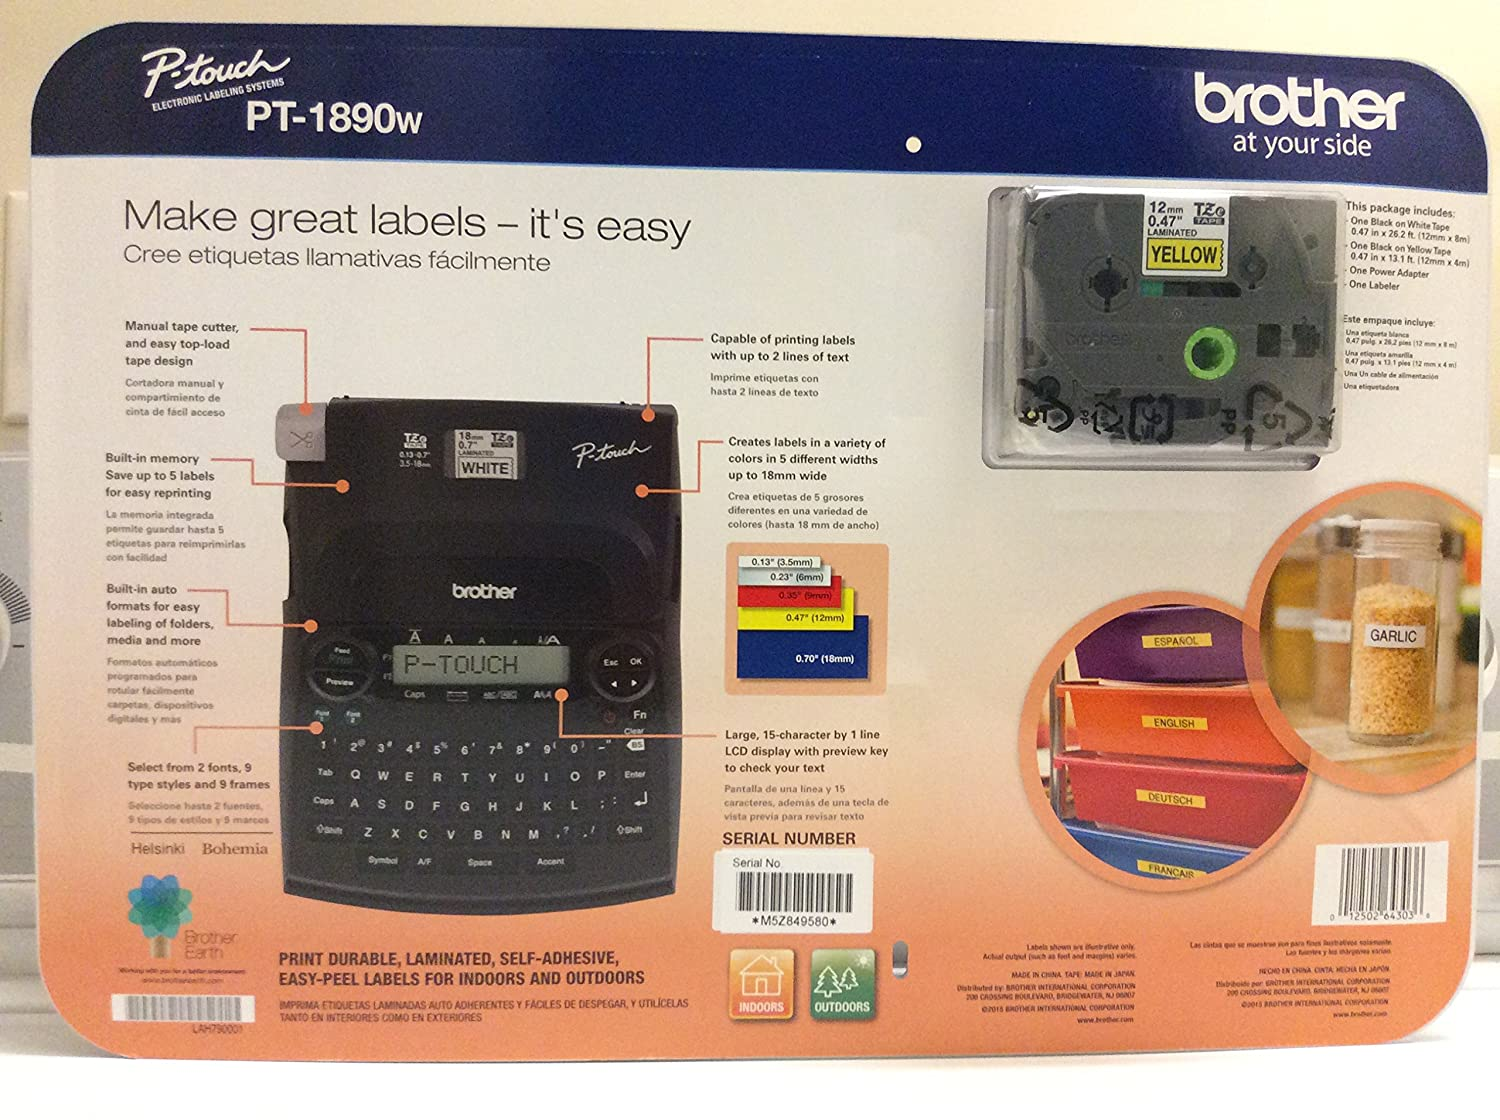 Brother P Touch Label Maker Pt 1890w With Bonus Labeling Tool Qwerty Keyboard 1801611 Makers Electronics Supplies Office Products